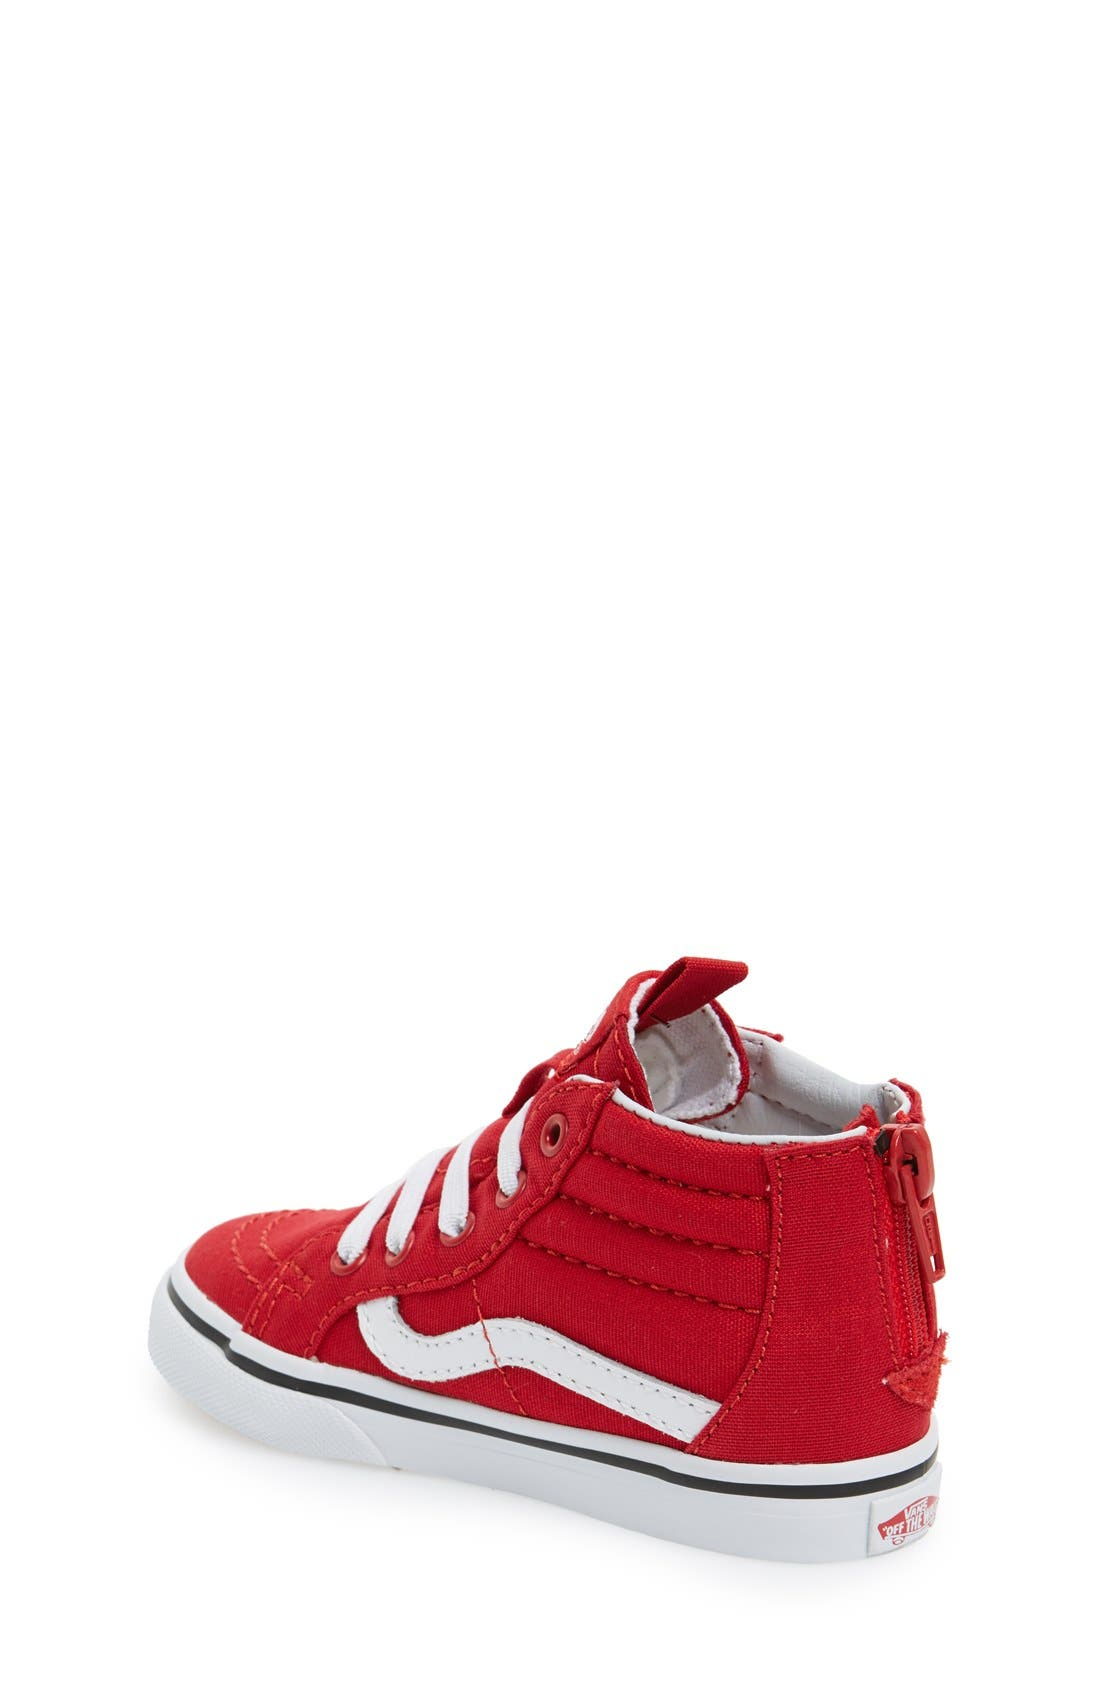 VANS, 'Sk8-Hi' Zip Sneaker, Alternate thumbnail 3, color, RACING RED/TRUE WHITE